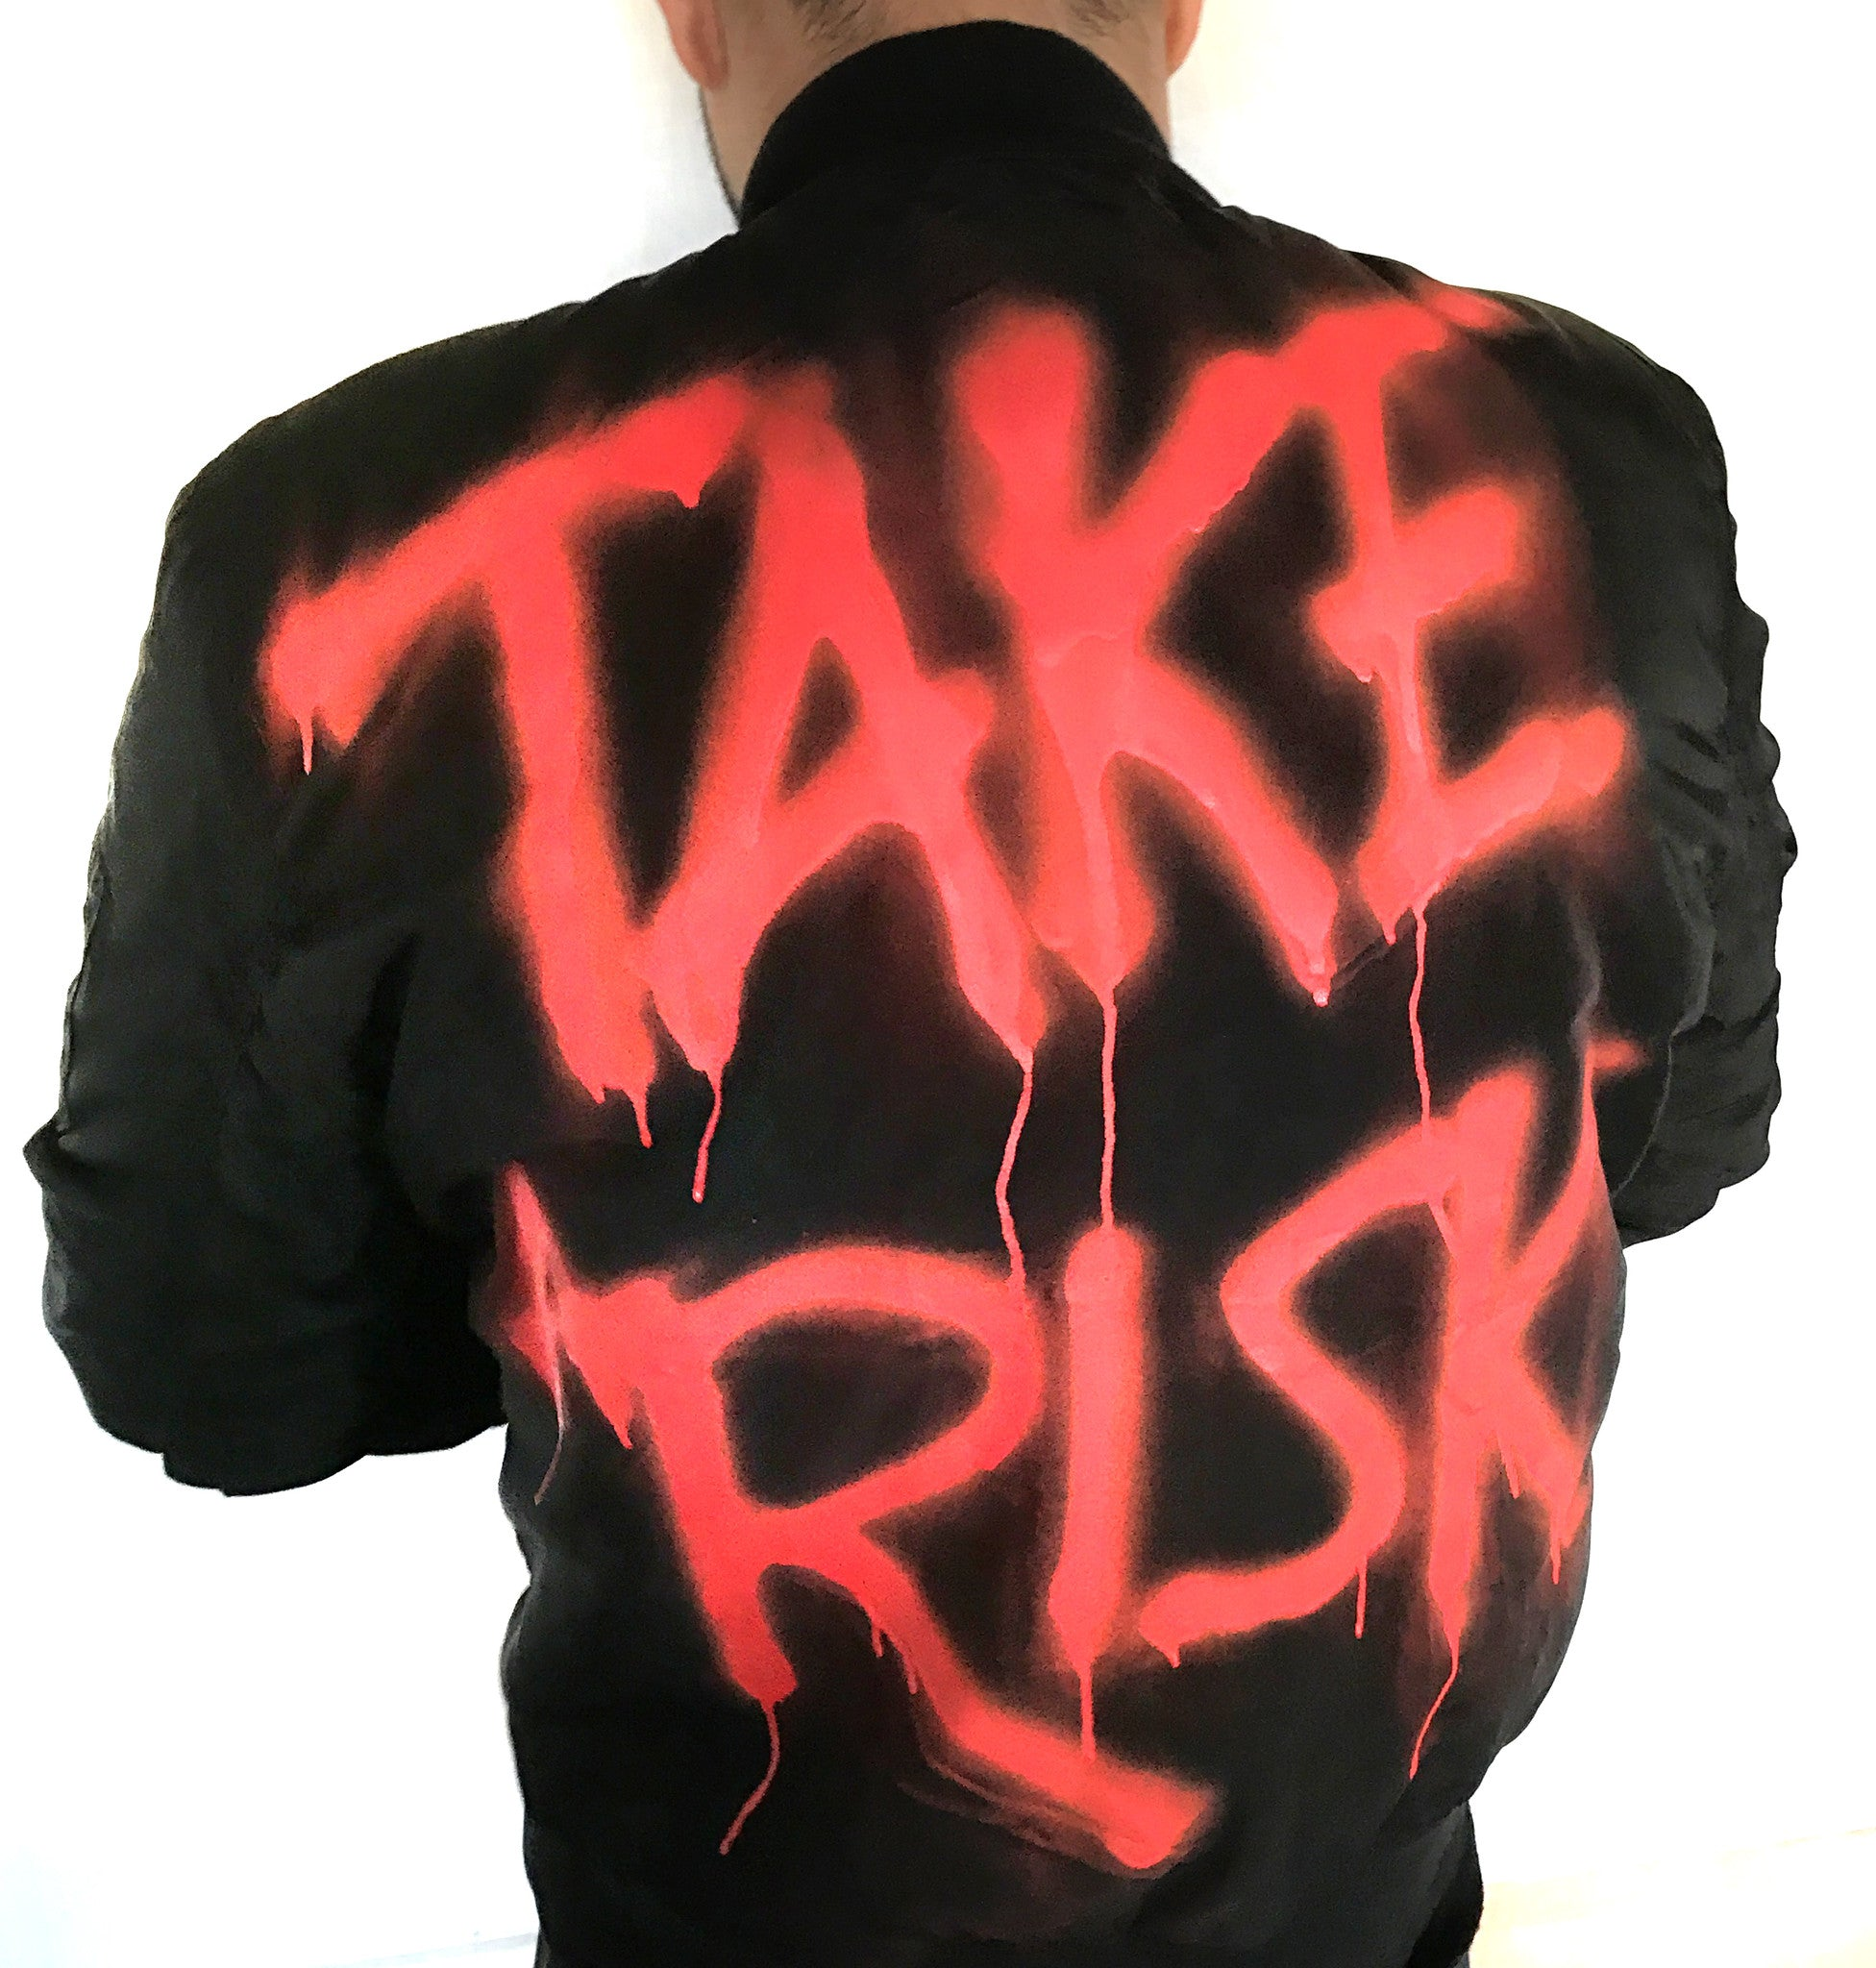 BOMBER JACKET TAKE A RISK